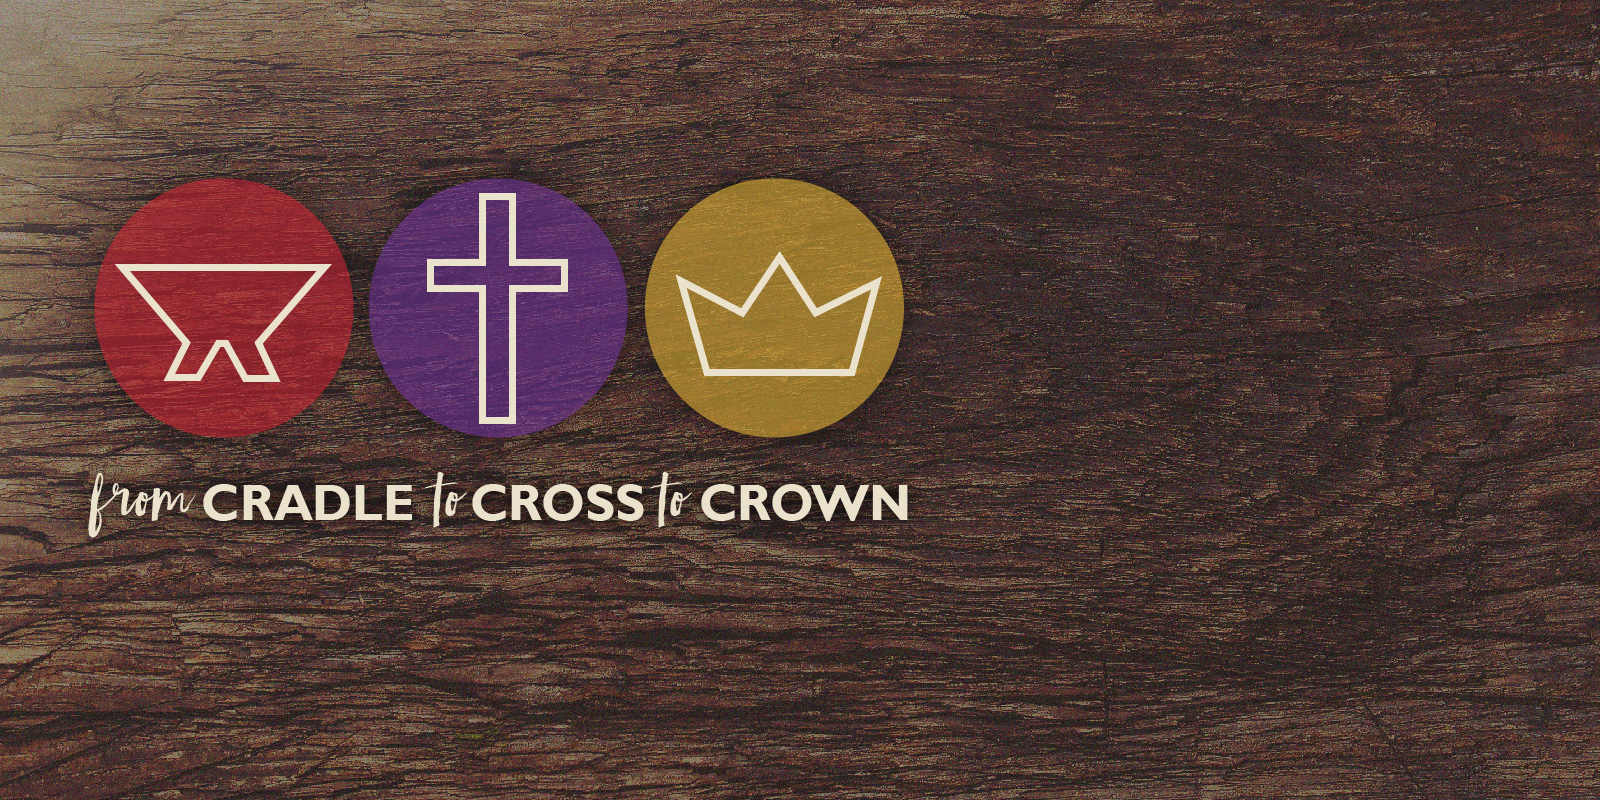 Cradle to Cross to Crown